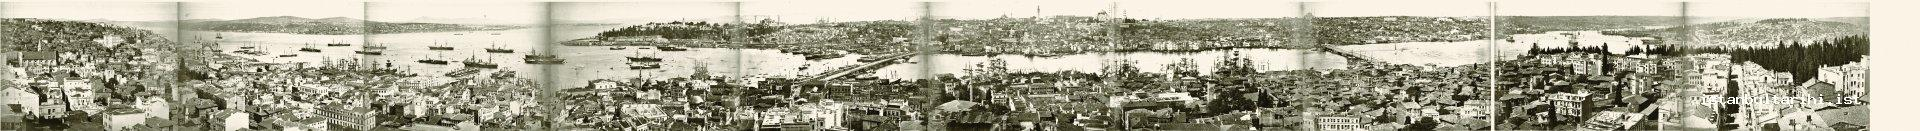 2- Panaroma of Istanbul in the period of Sultan Abdülhamid II (Guilaume Berggren, Constantinople, from the archives of M. Hilmi Şenalp)